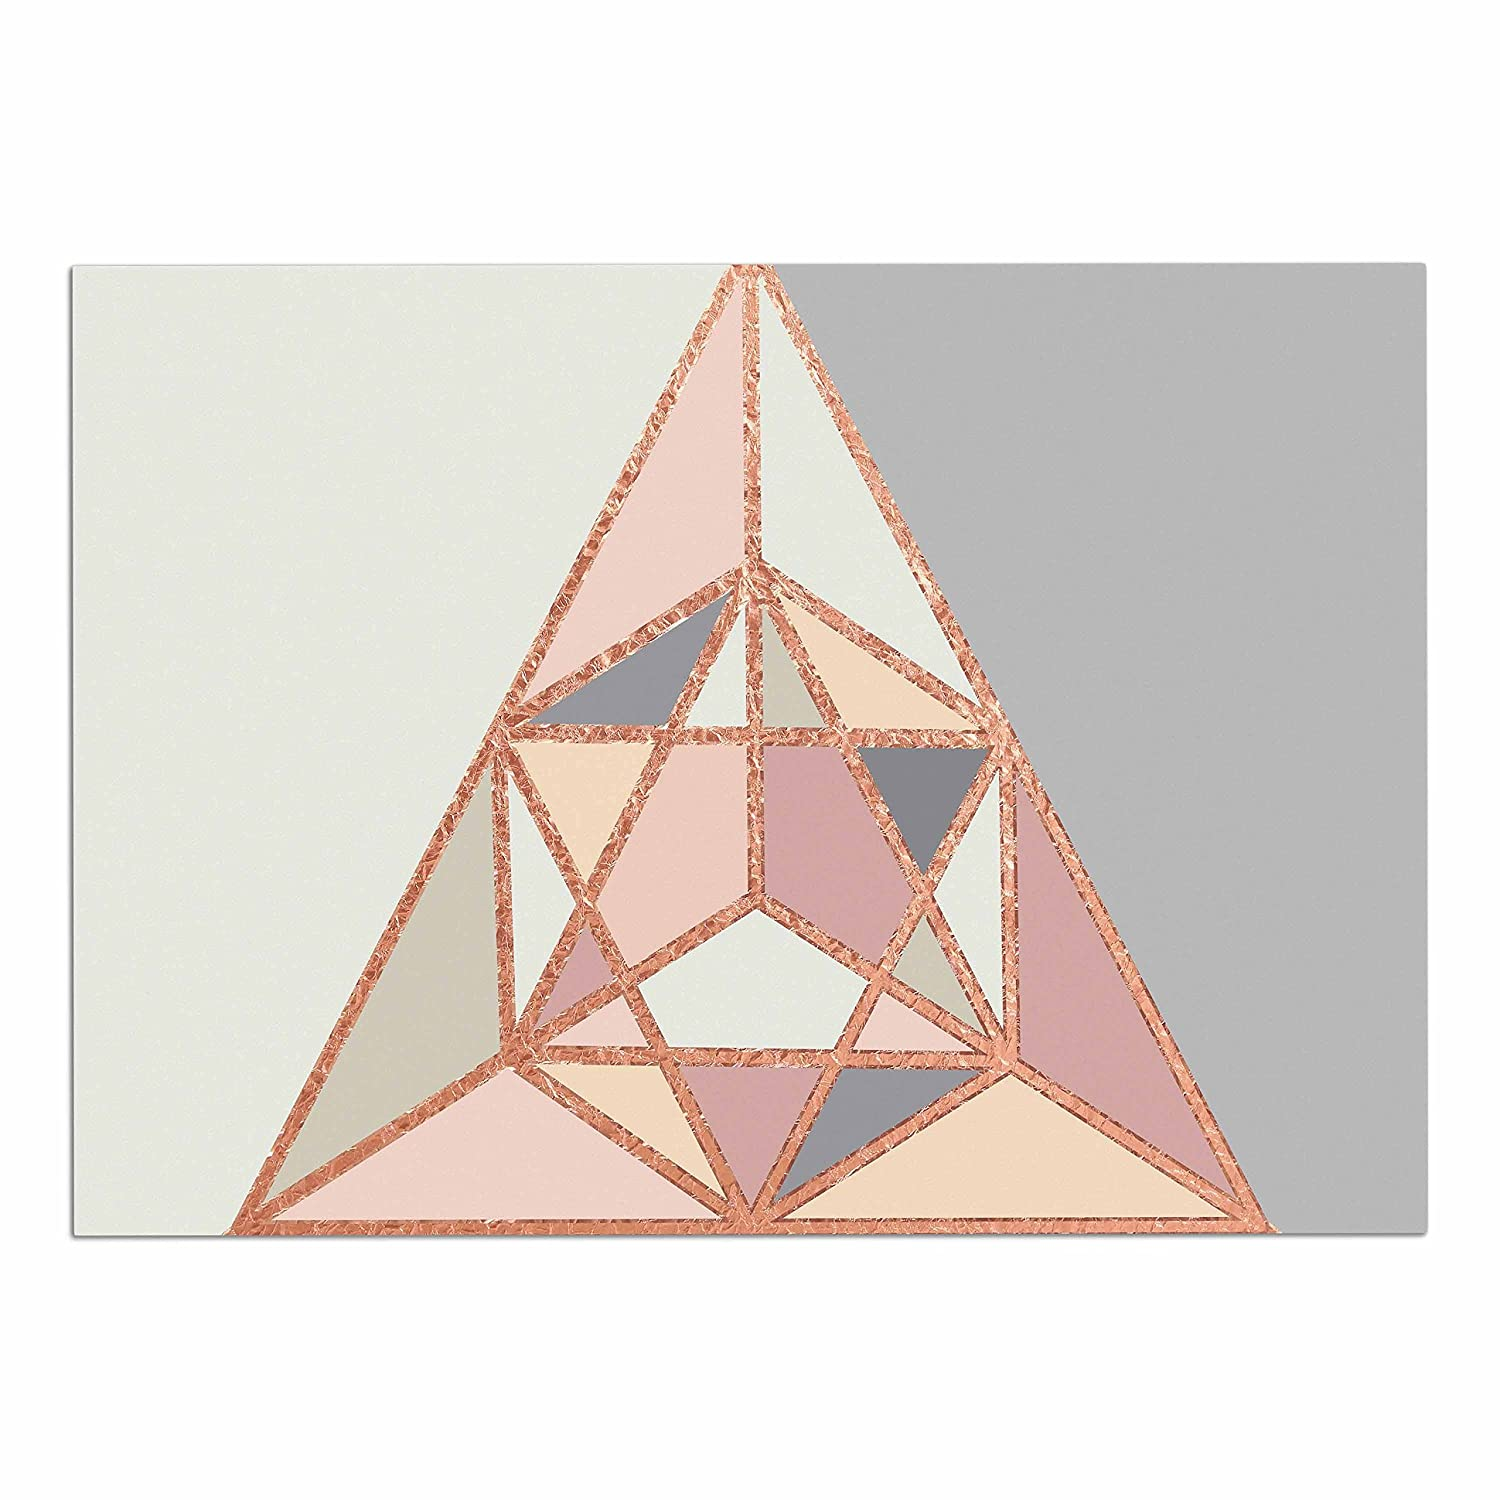 KESS InHouse CD2019ADM02 Draper pink gold Geometry gold Pastel Digital Dog Place Mat, 24 x15